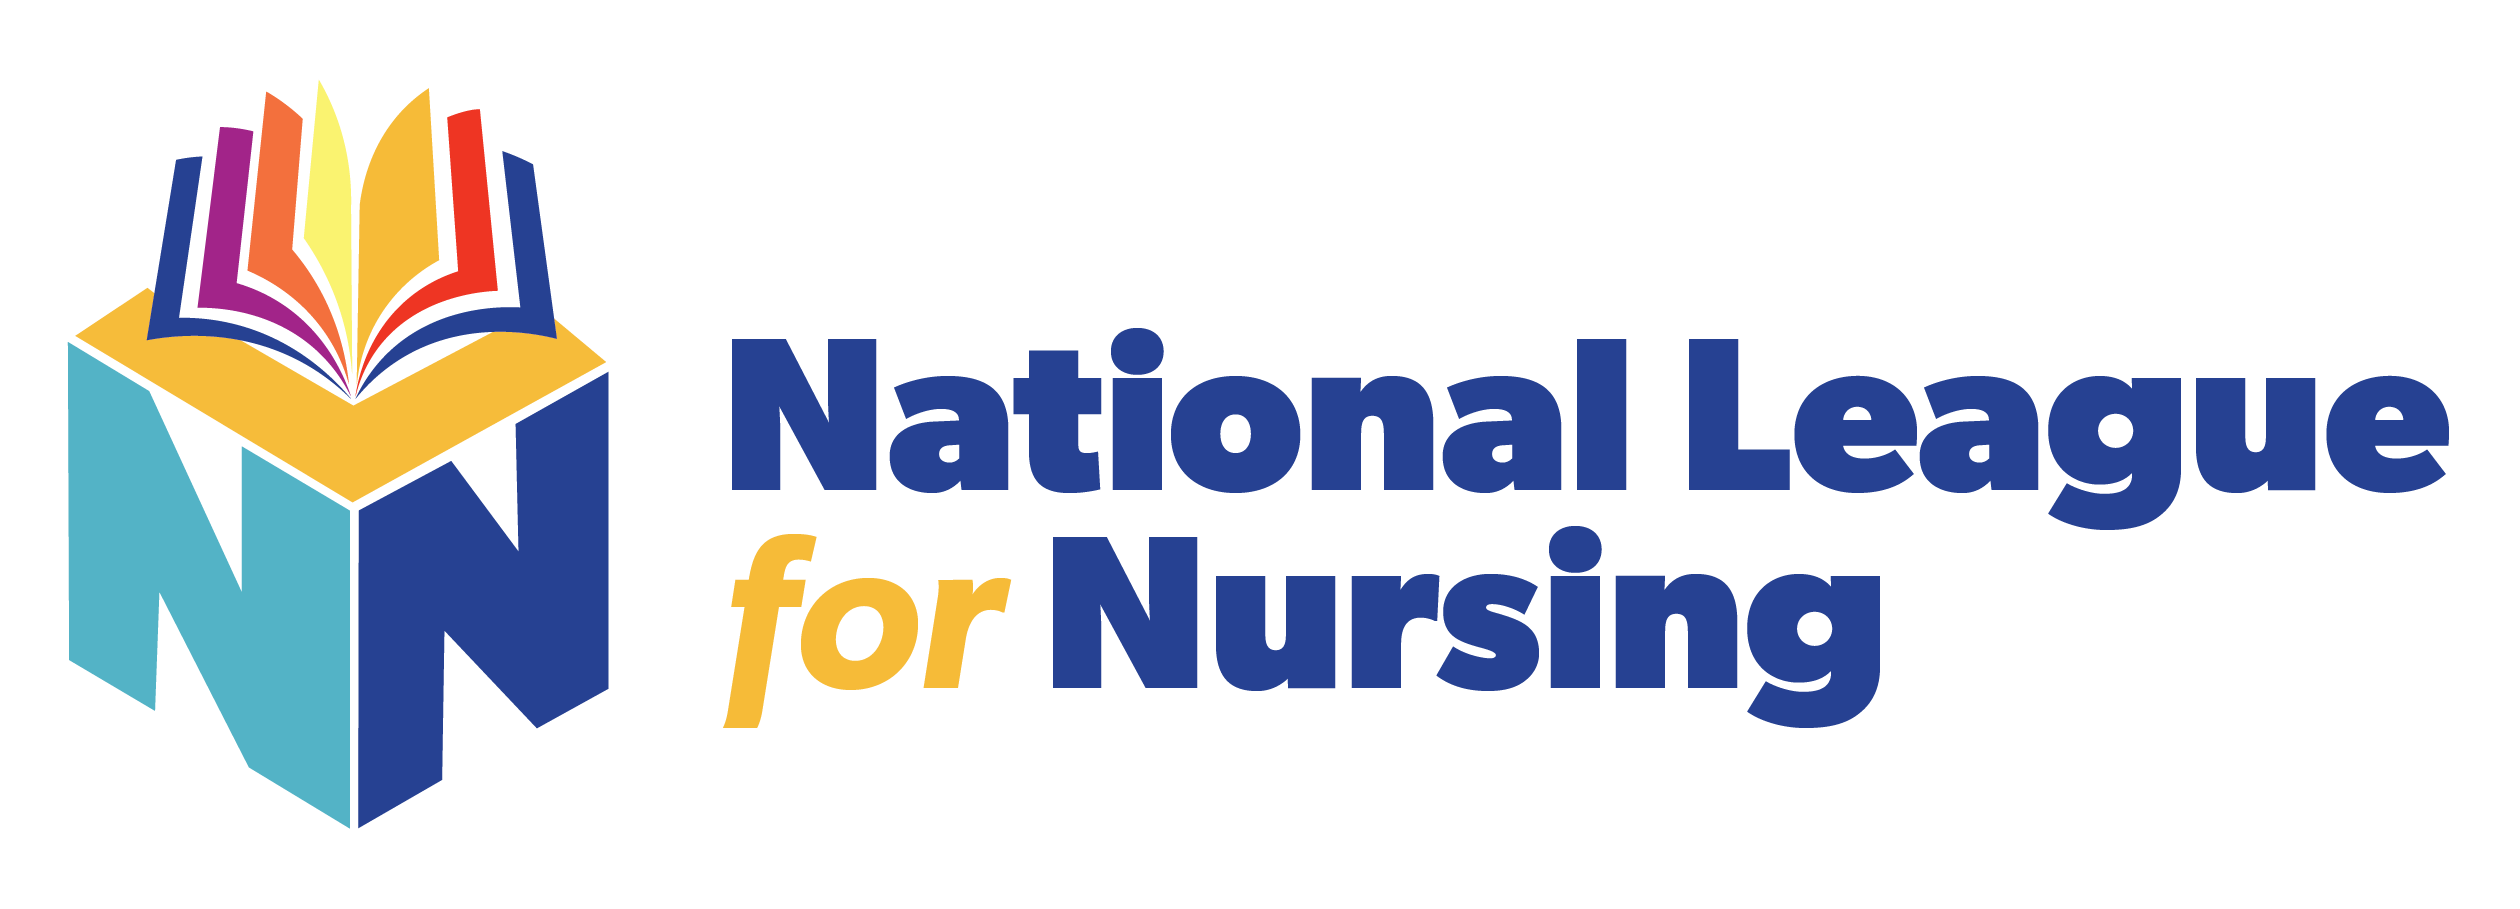 National League of Nursing